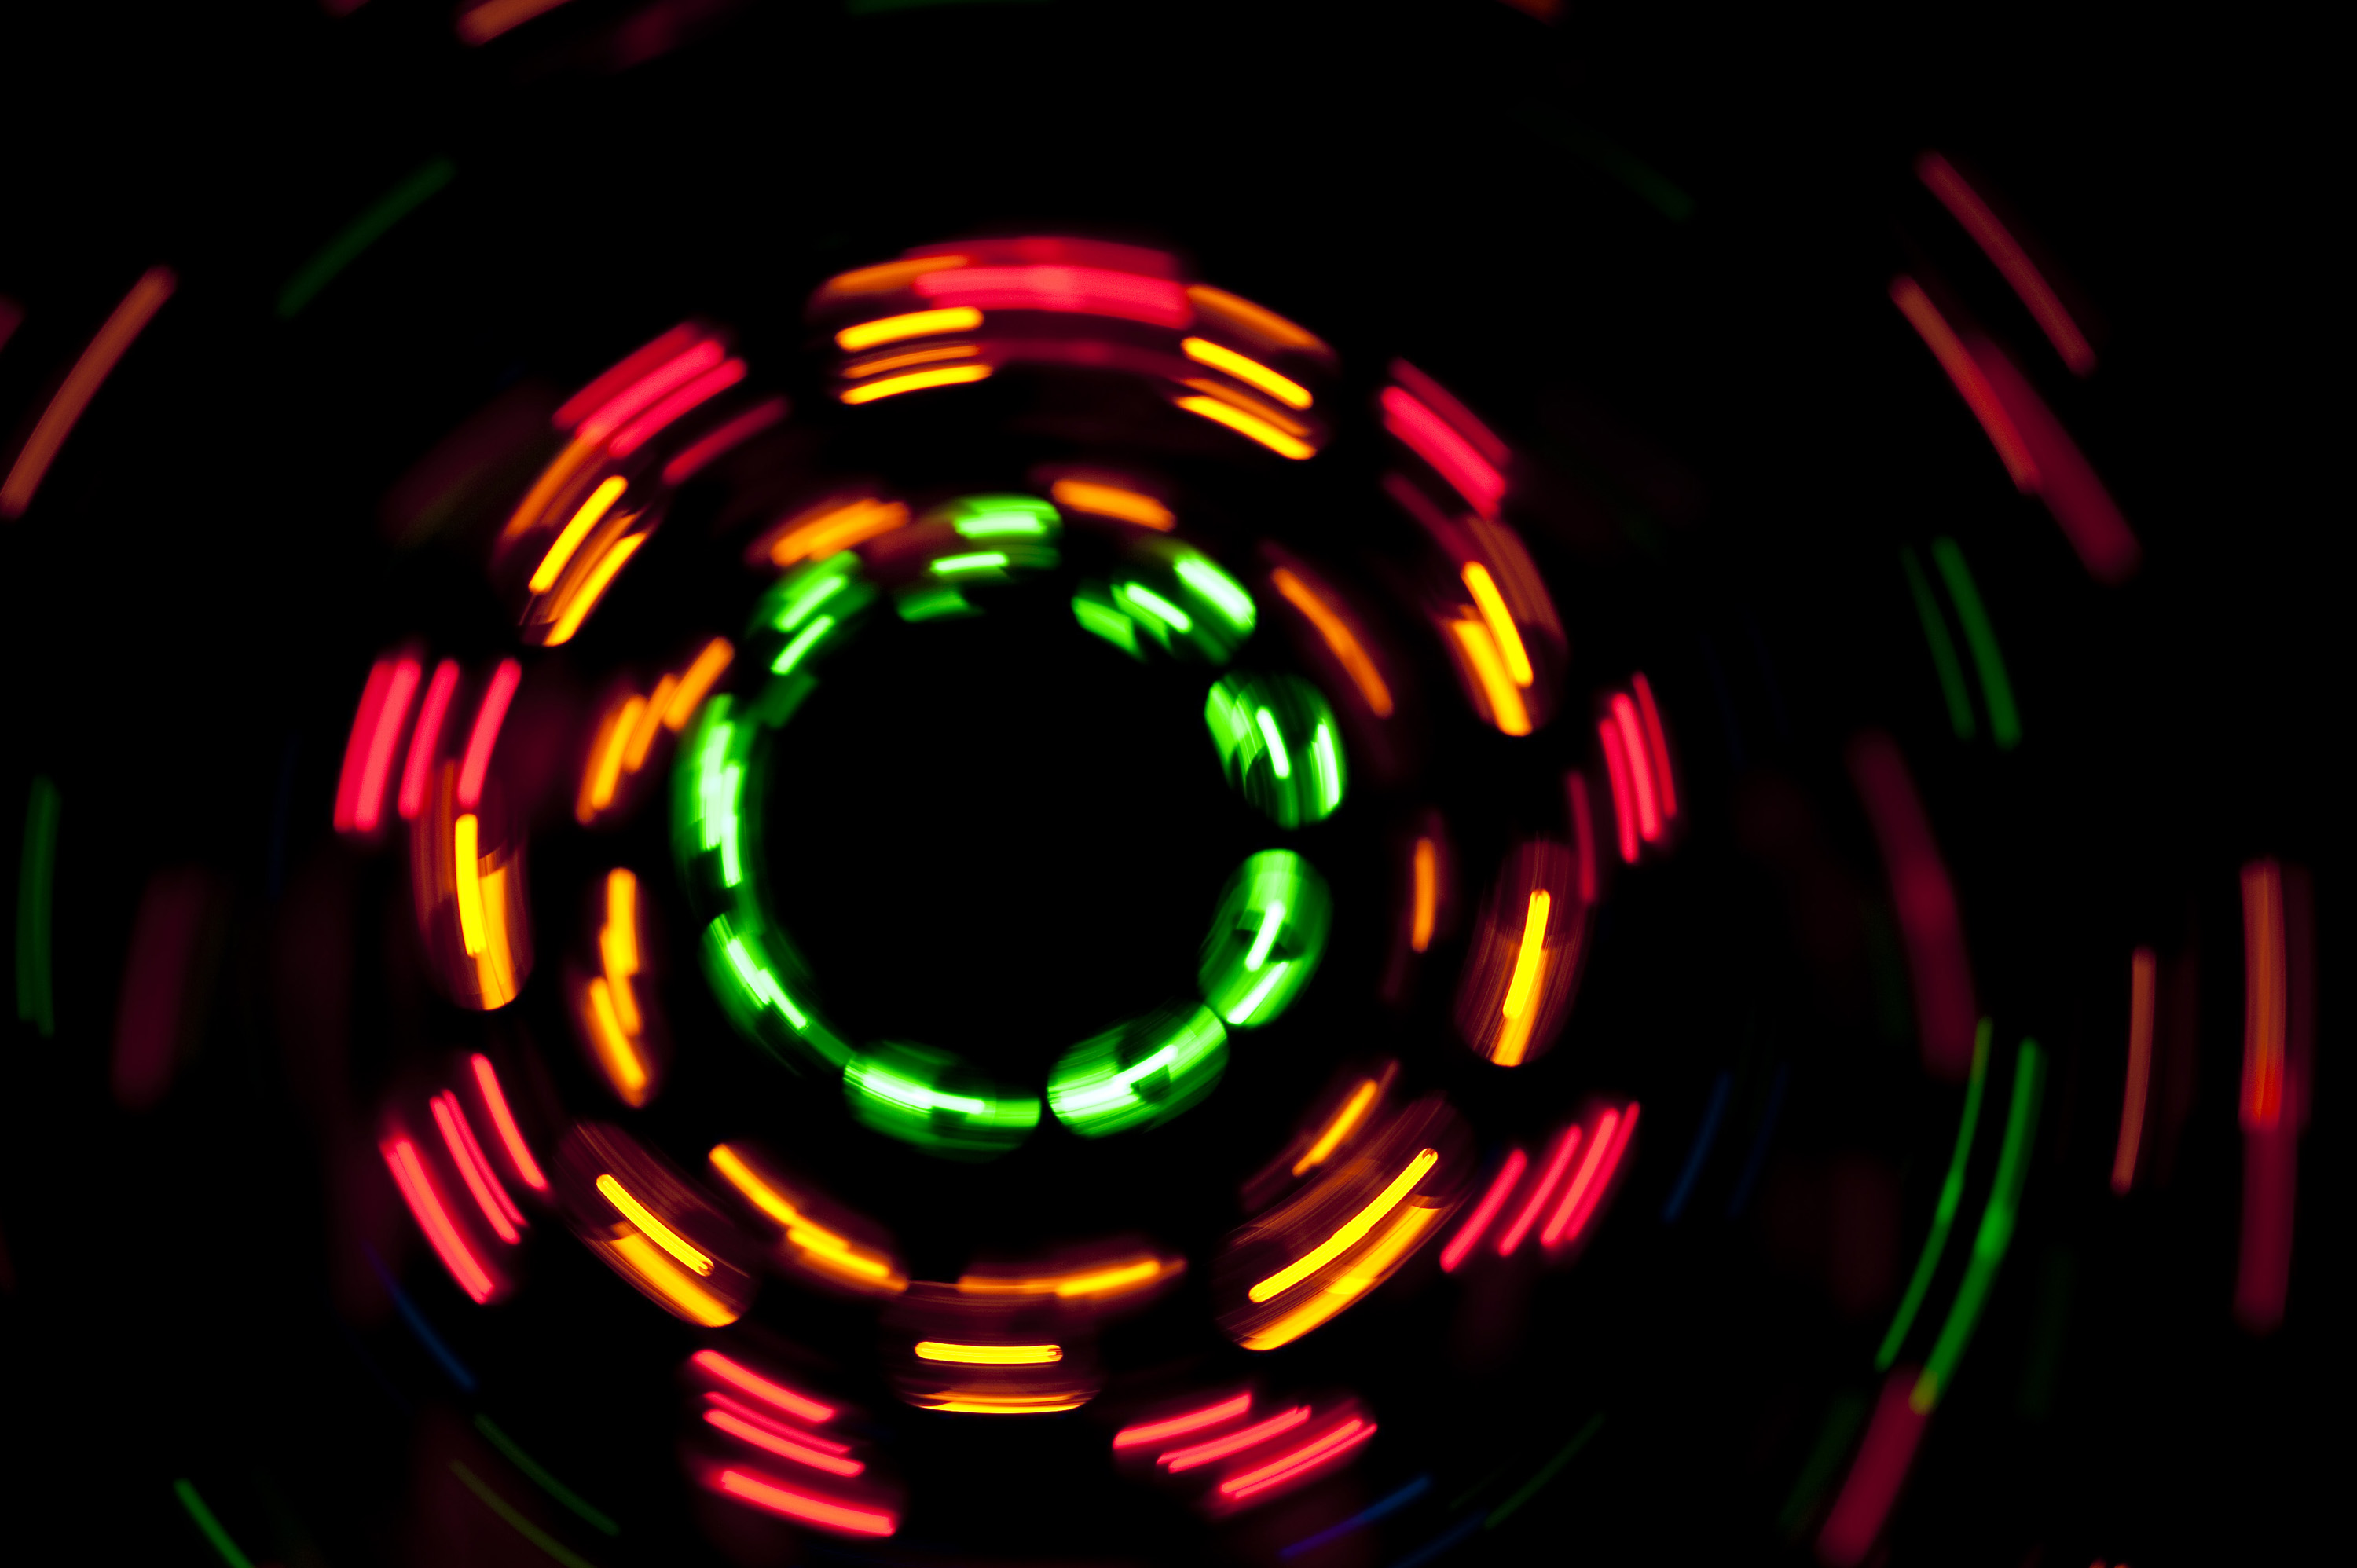 glowing dashes of light plotting concentric circles on a black background